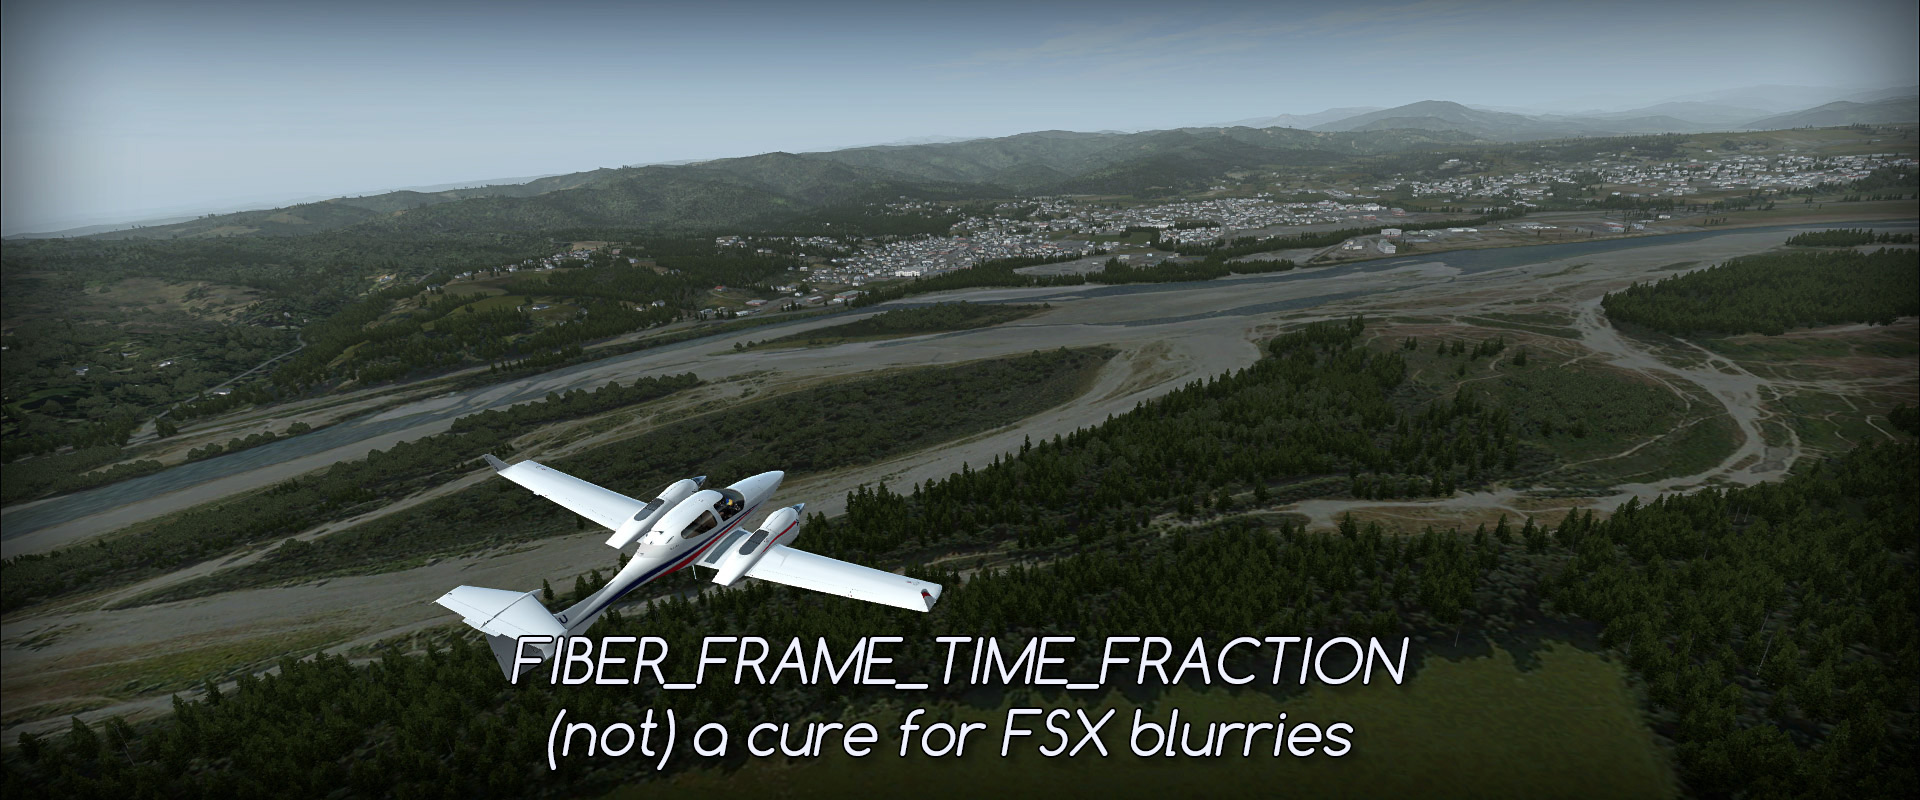 FFTF - (not) a cure for FSX blurries (FIBER_FRAME_TIME_FRACTION)